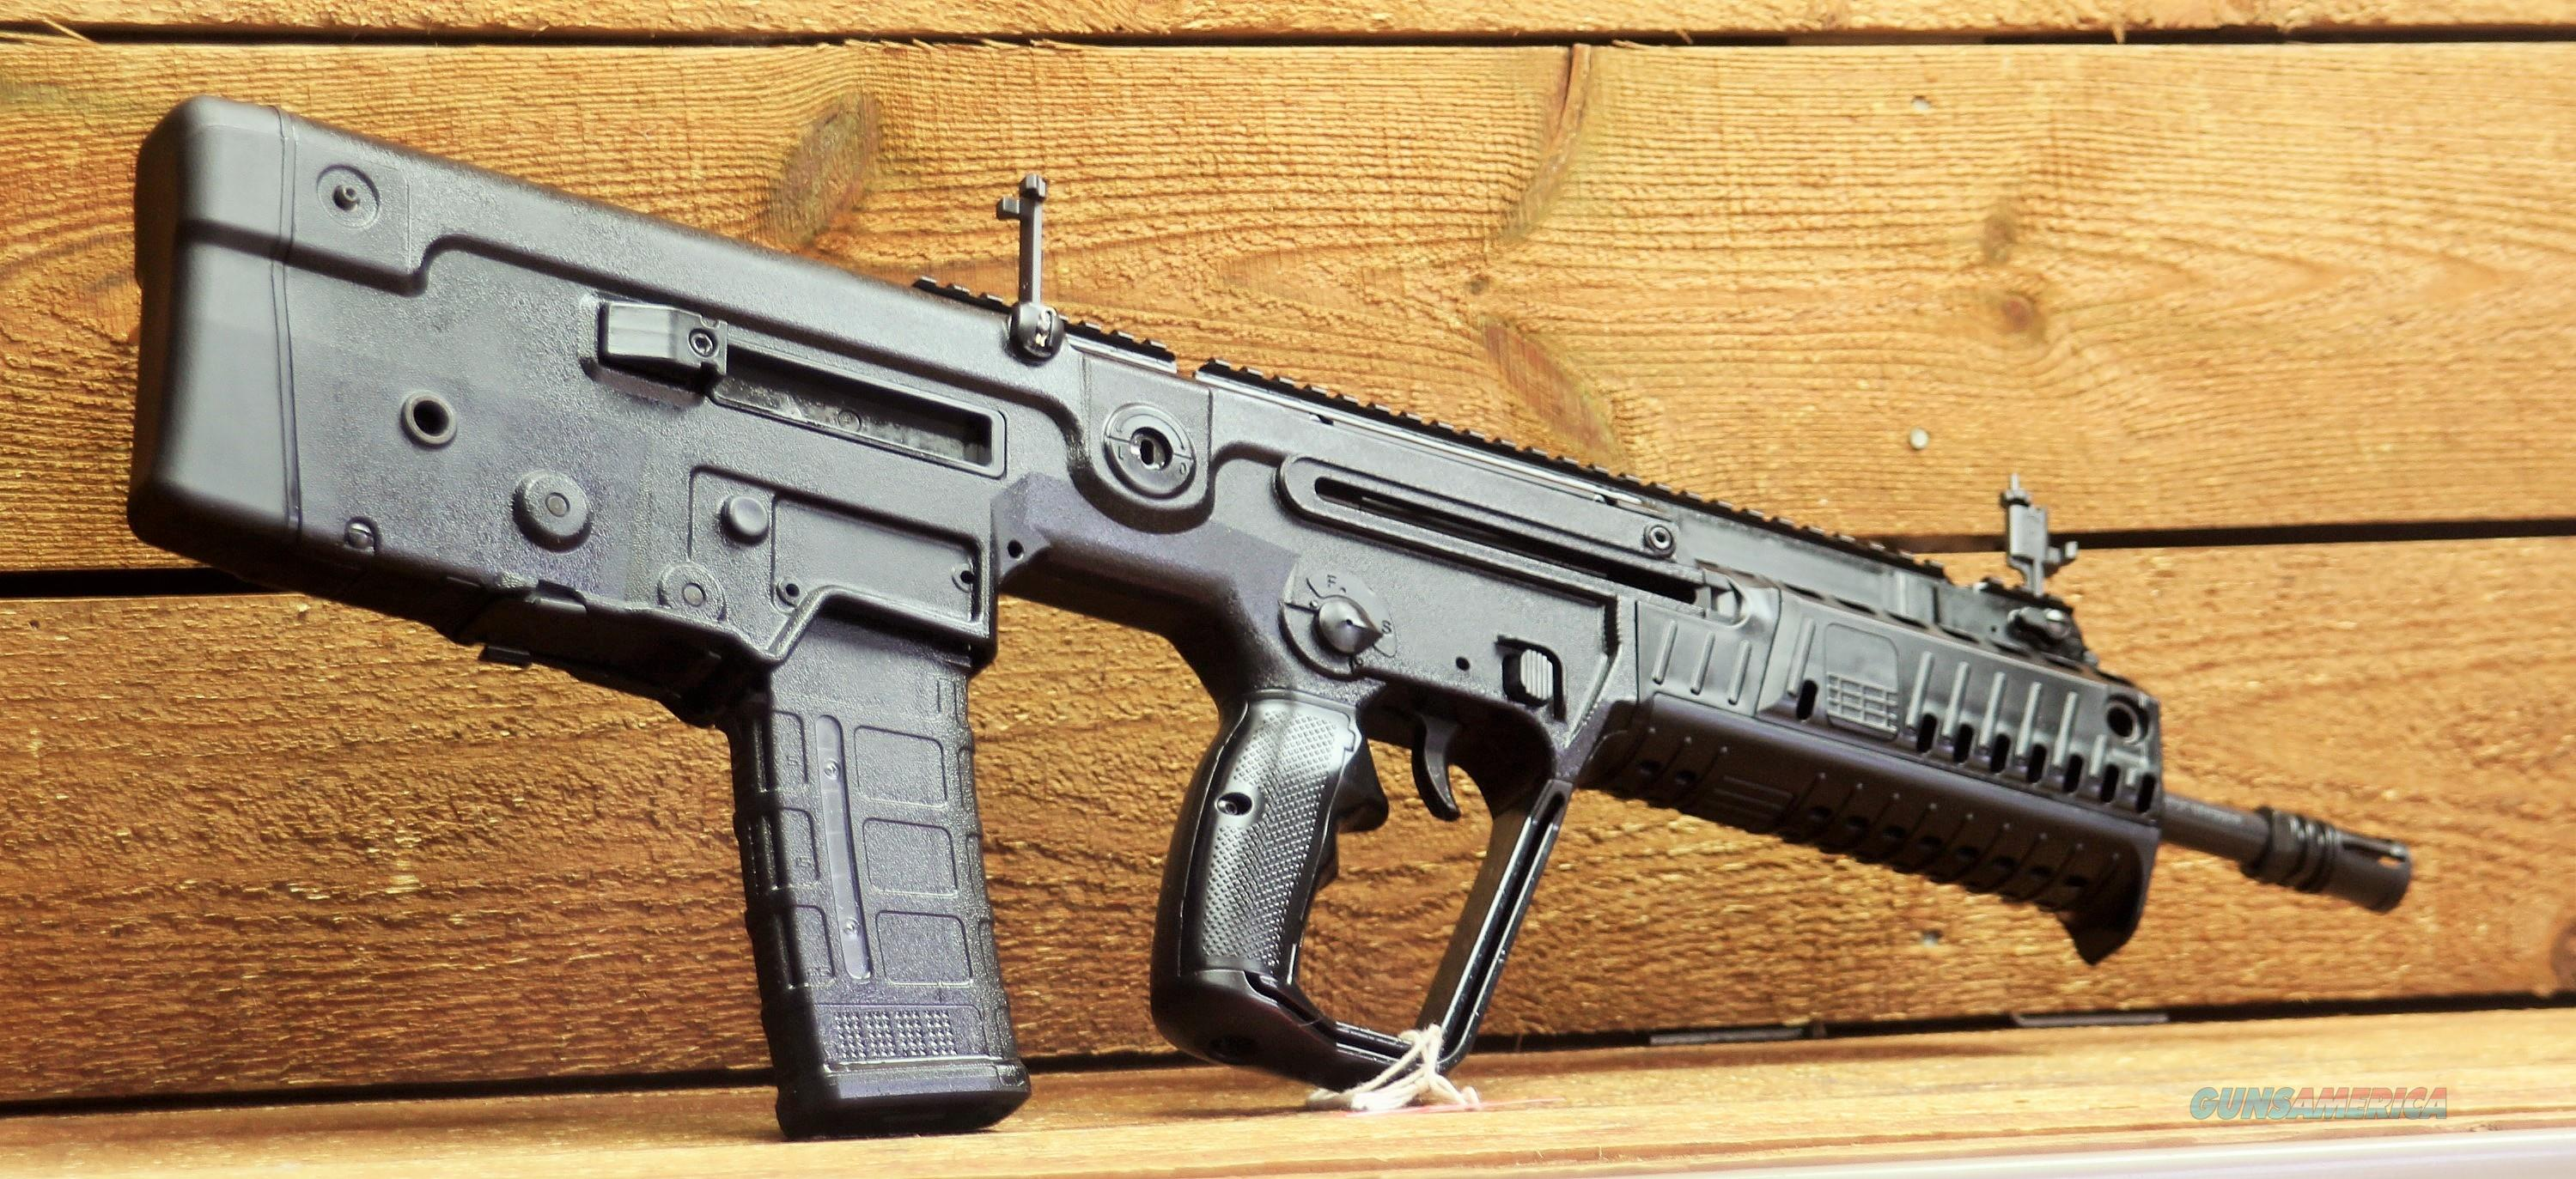 1. EASY PAY $105 DOWN LAYAWAY 18 MONTHLY  PAYMENTS  Israel Weapon Industries x 95 IWI TAVOR X95 Bullpup 5.56mm NATO  XB16 bull-pup Flattop  5.56mm NATO Tavor SAR bullpup  picatinny rails pistol grip   Guns > Rifles > IWI Rifles